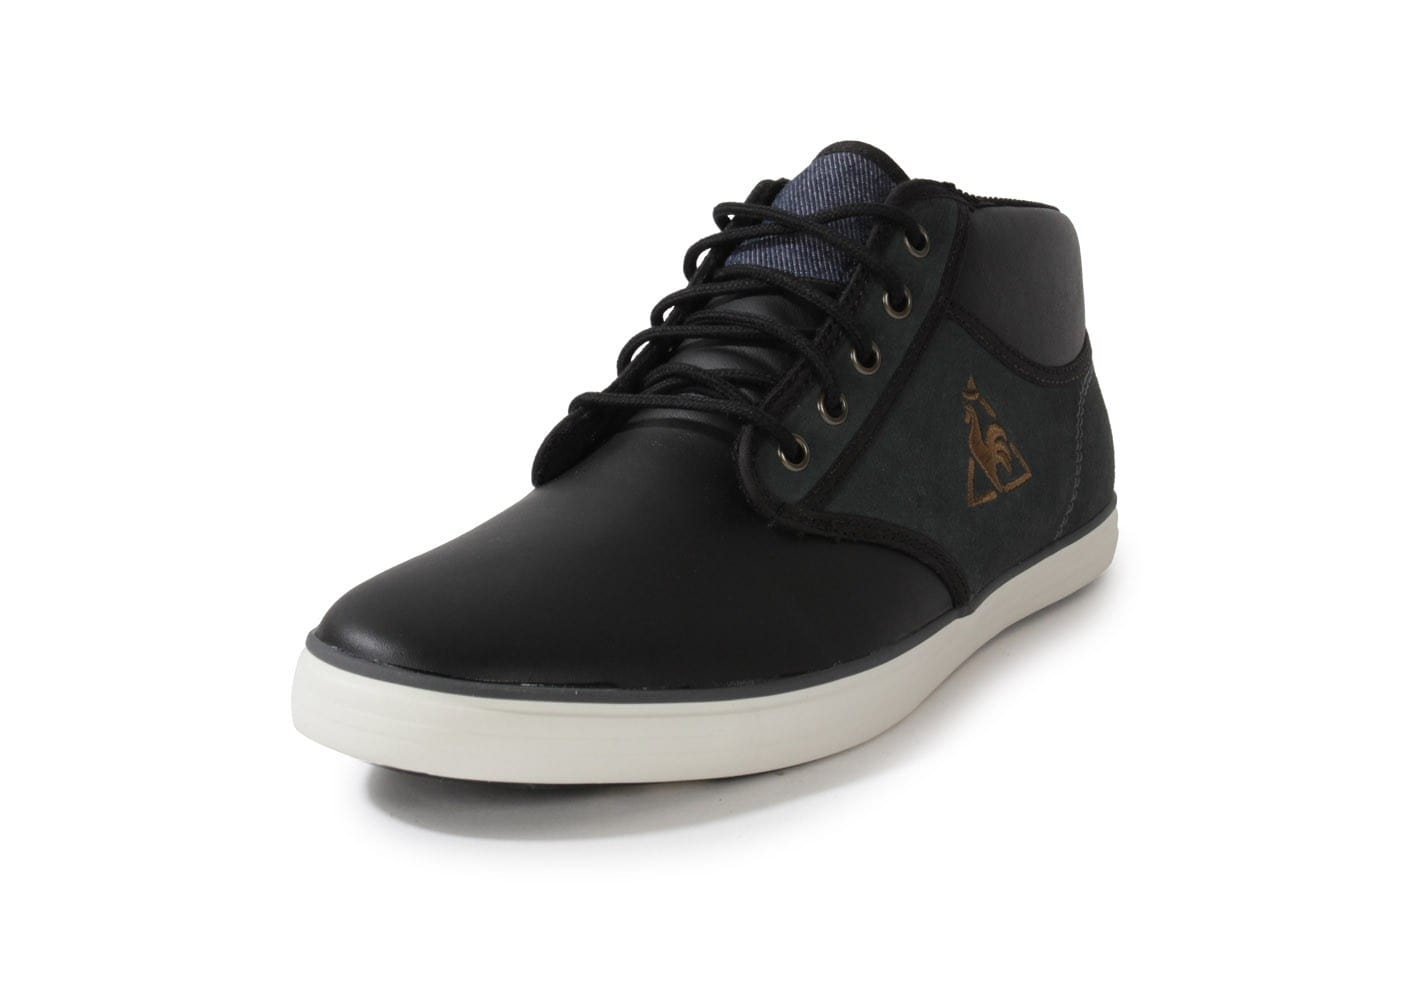 le coq sportif brancion anthracite chaussures homme chausport. Black Bedroom Furniture Sets. Home Design Ideas